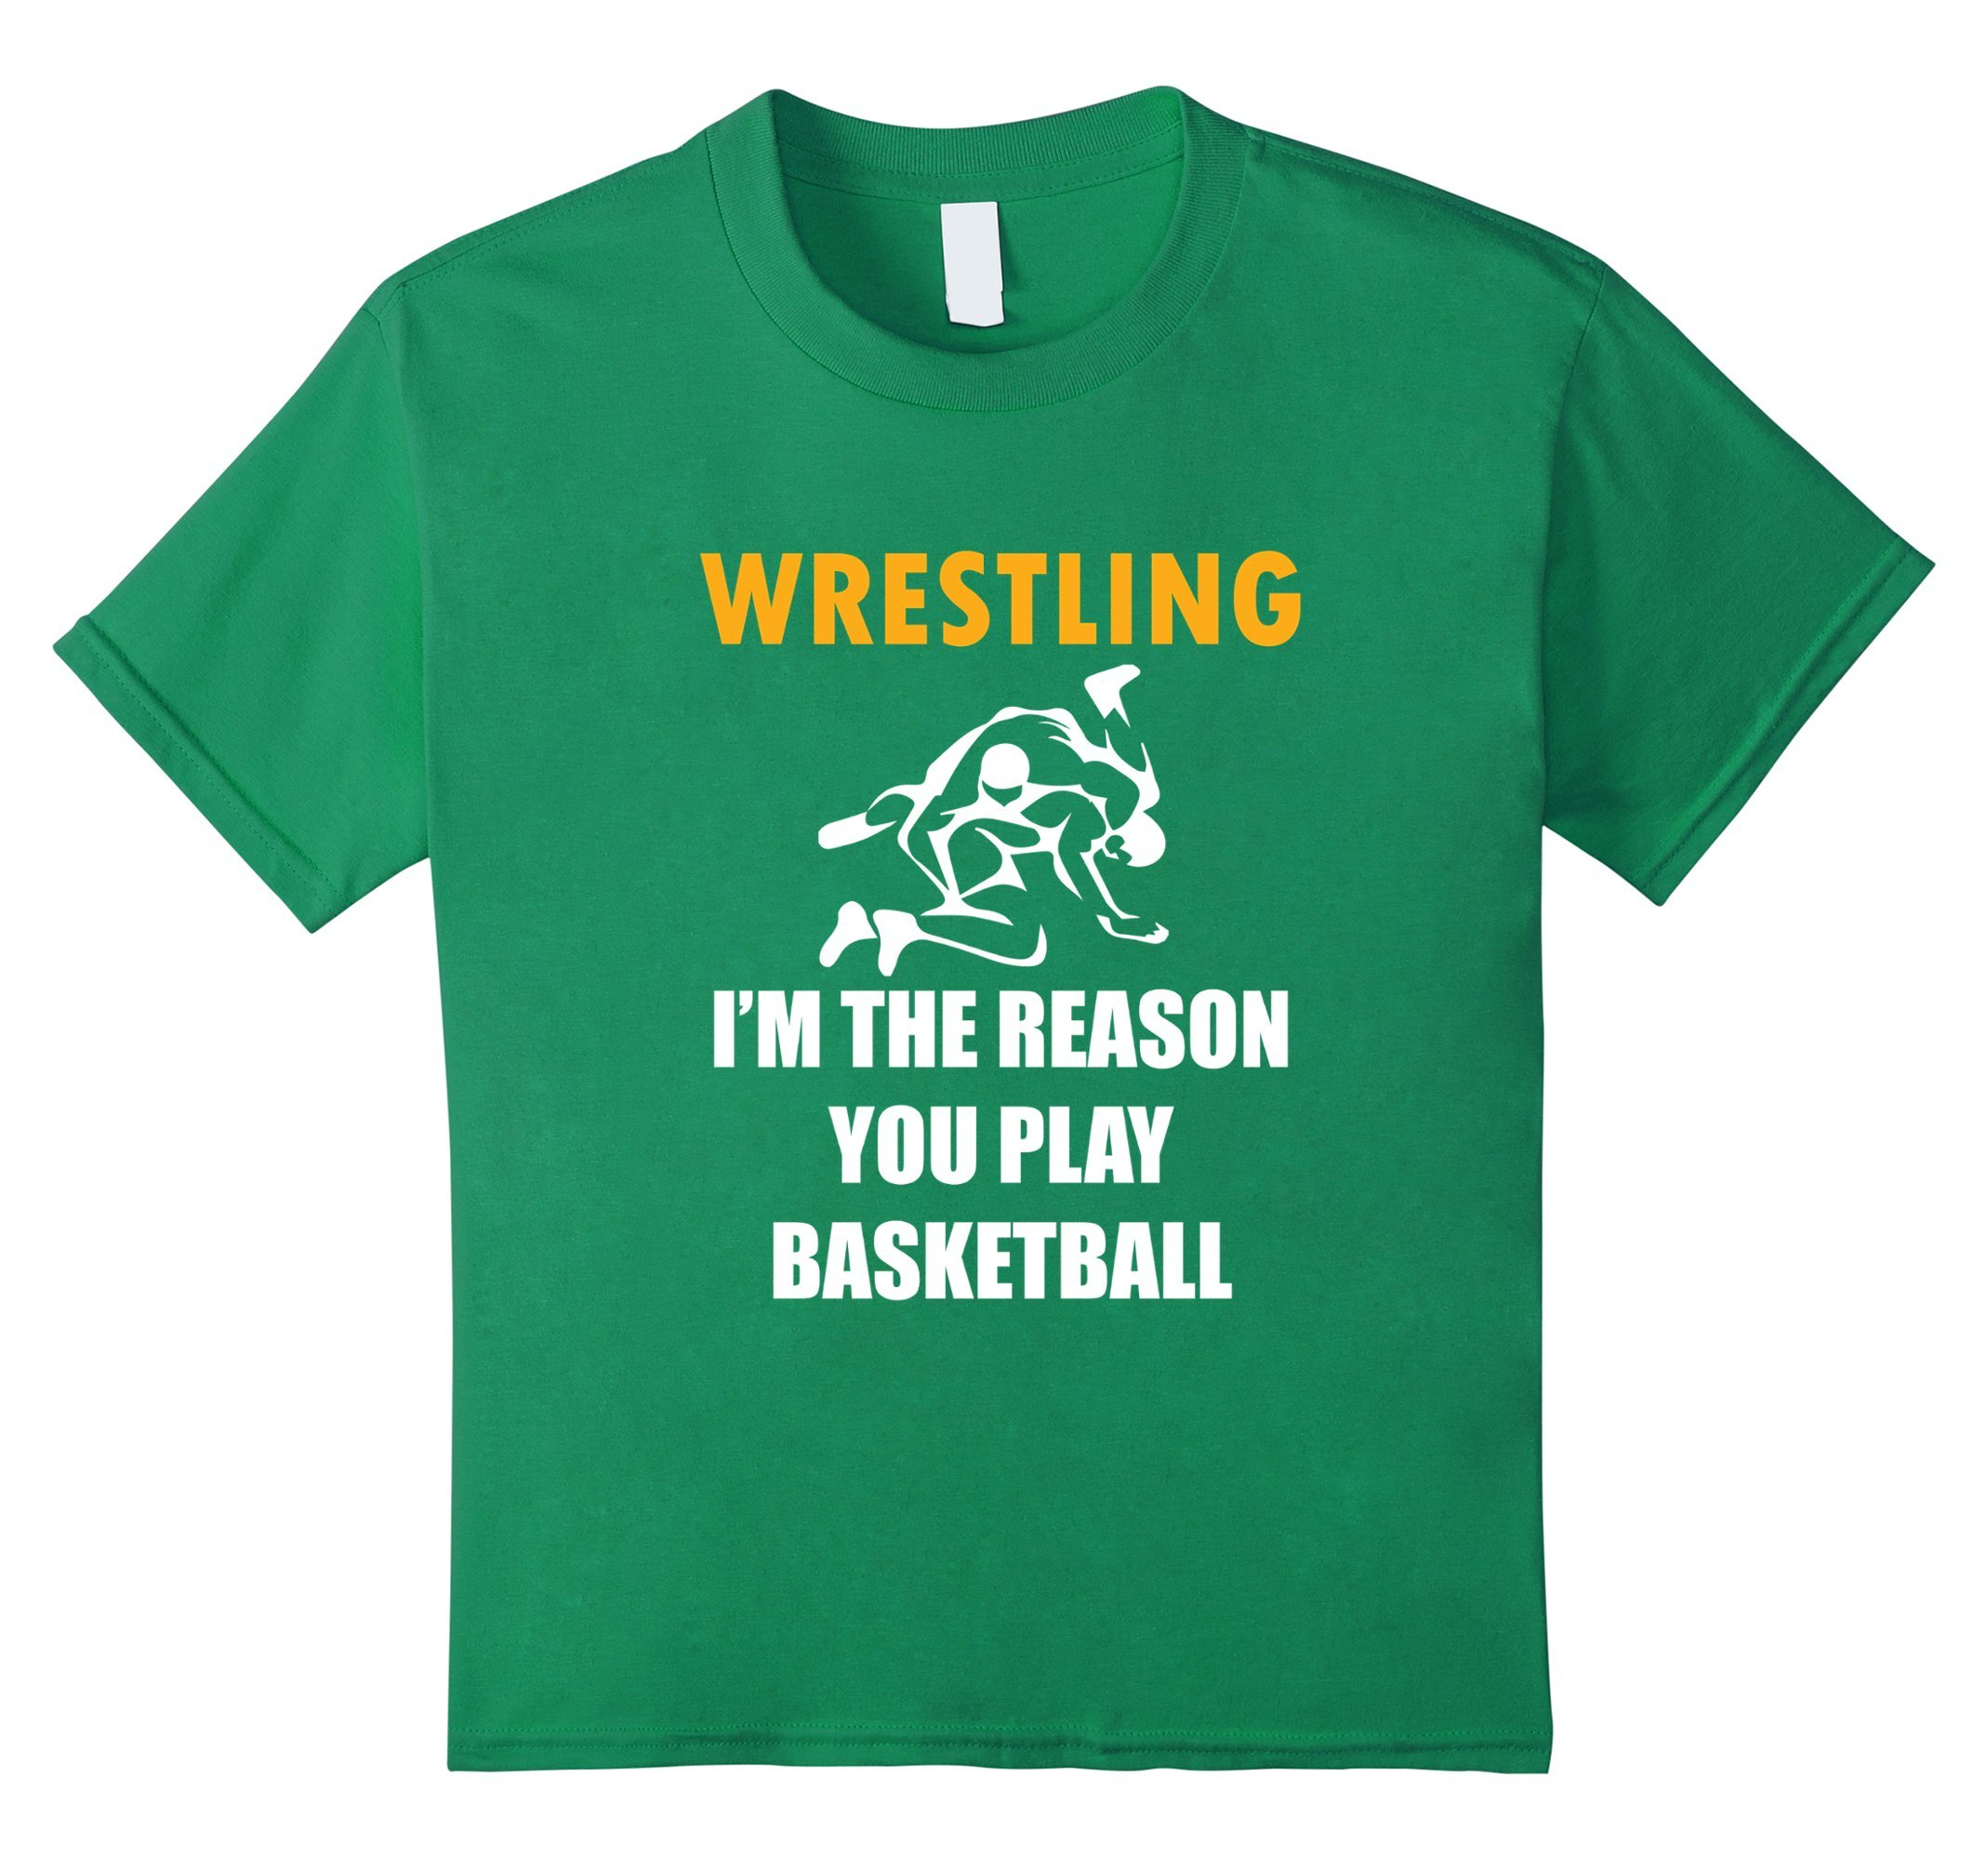 Kids Funny Wrestling Shirt Wrestling i m the reason 10 Kelly Green